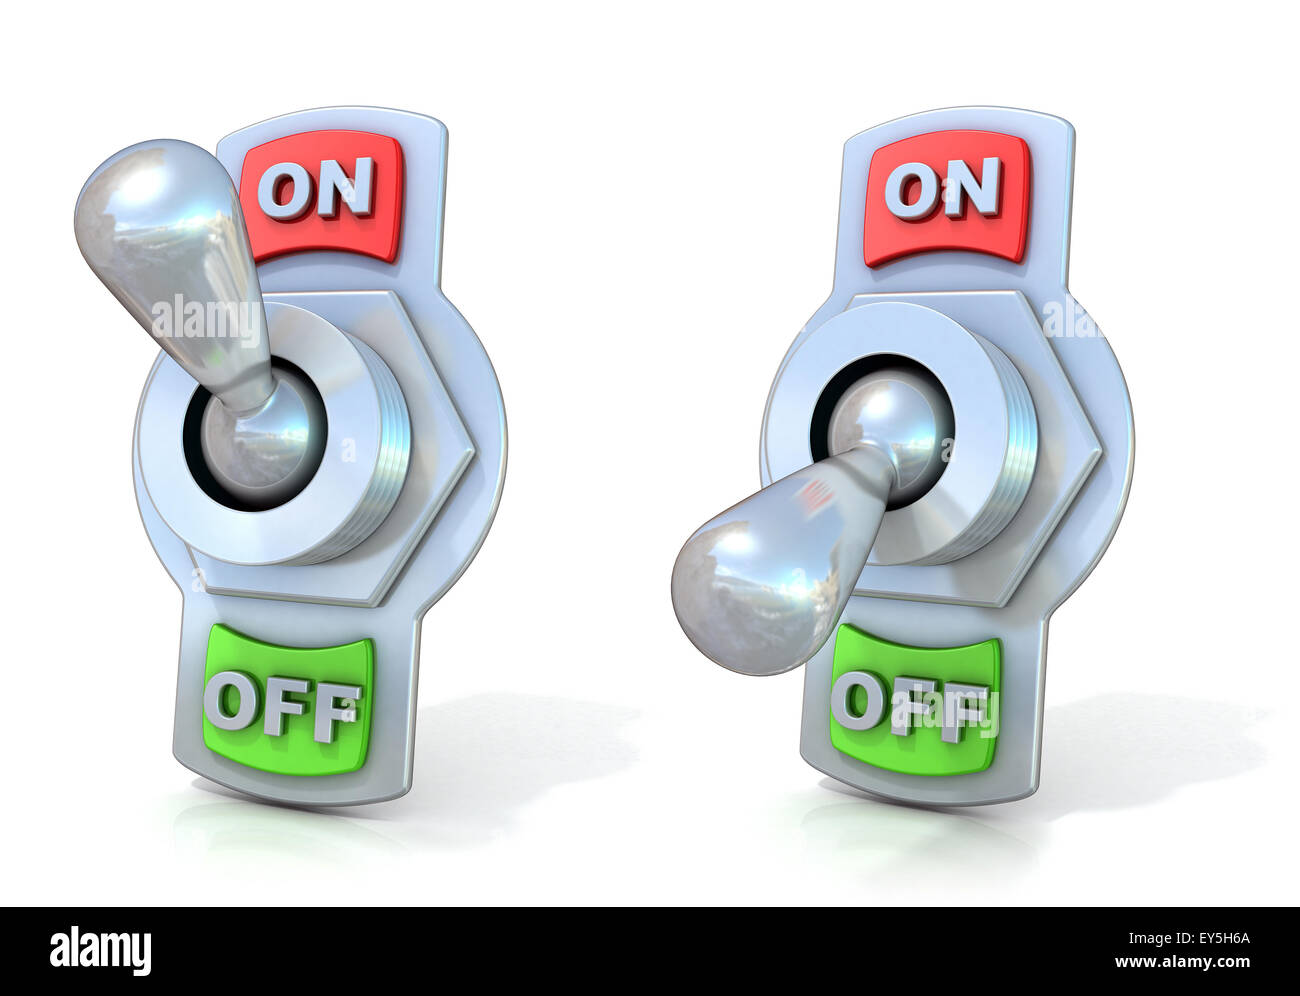 On and off metal toggle switches. 3D render illustration isolated on white background. - Stock Image